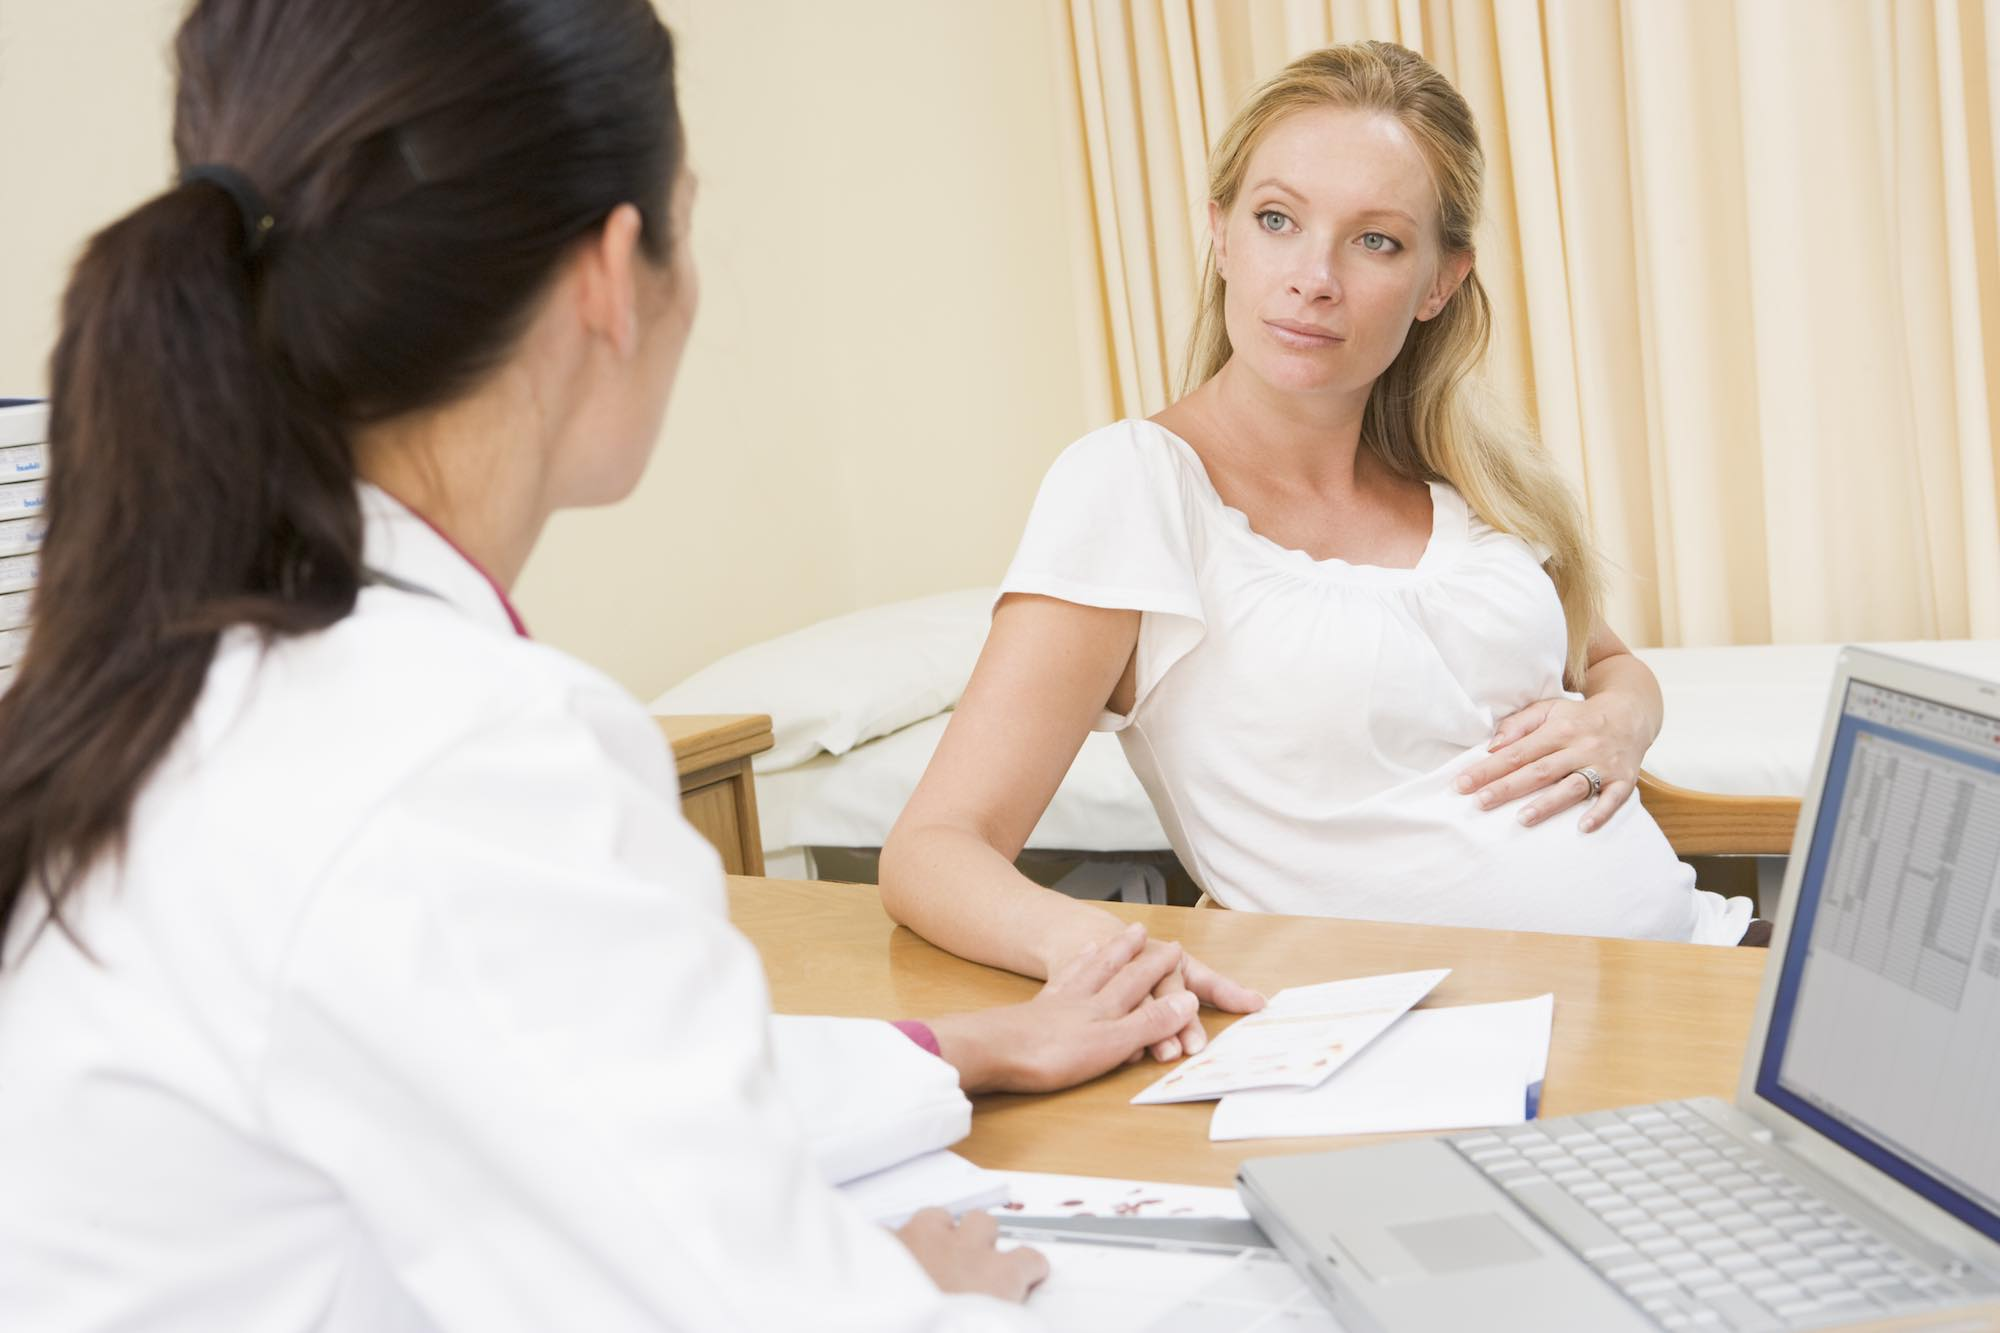 doctor-with-laptop-and-pregnant-woman-in-doctors-office_sizeXL_9749a6